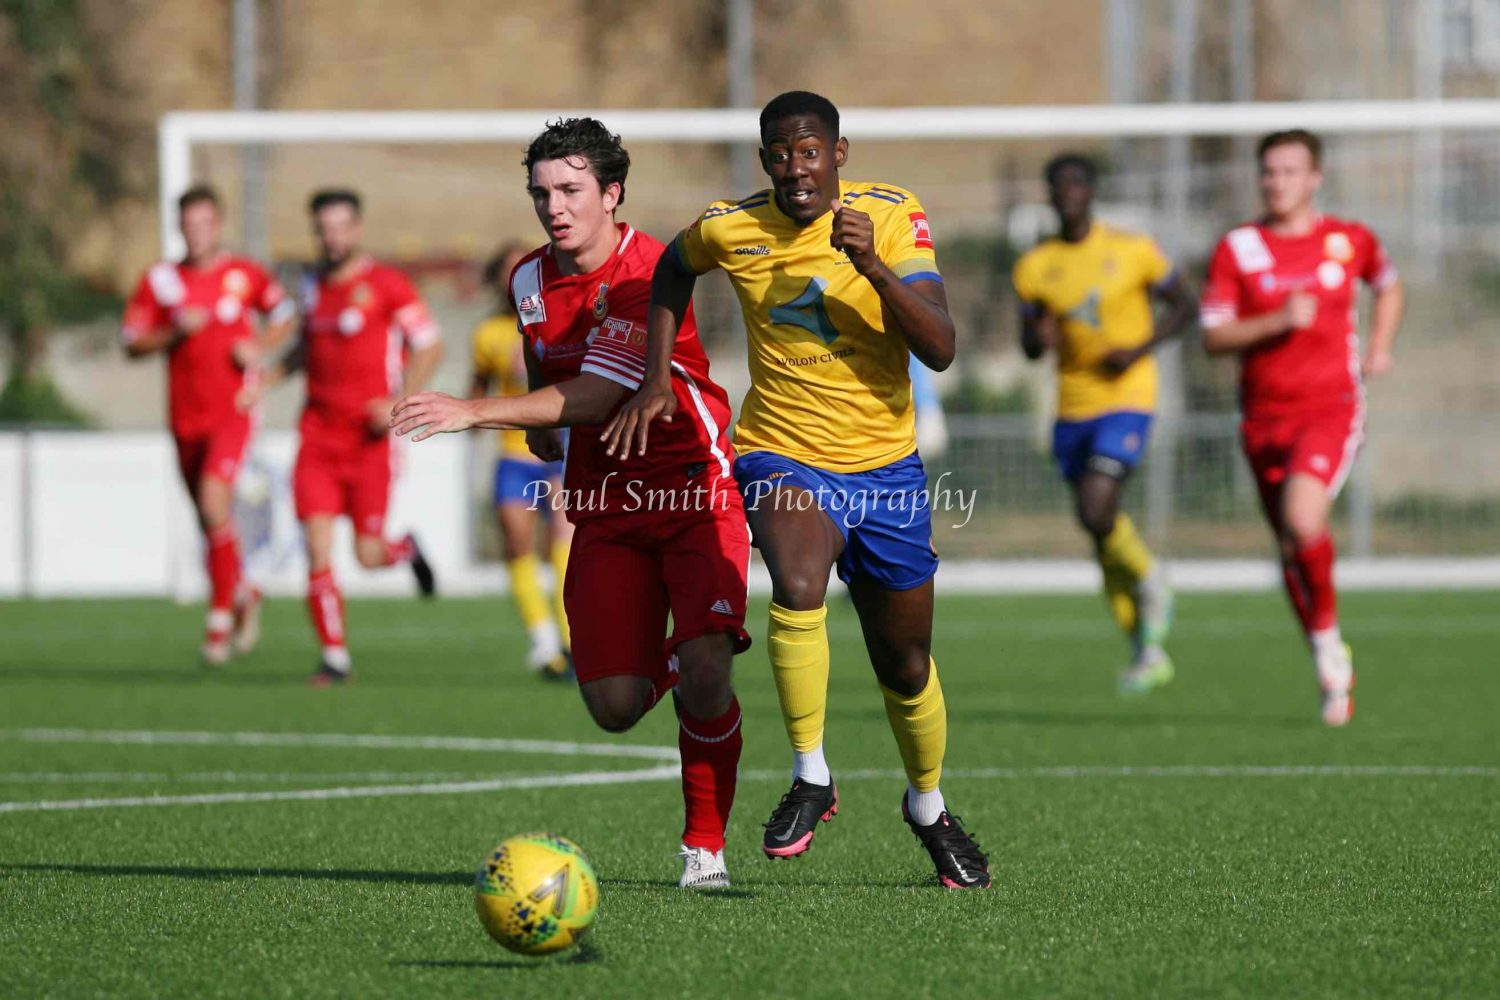 Gallery: Lancing 1 v Whitstable Town 0